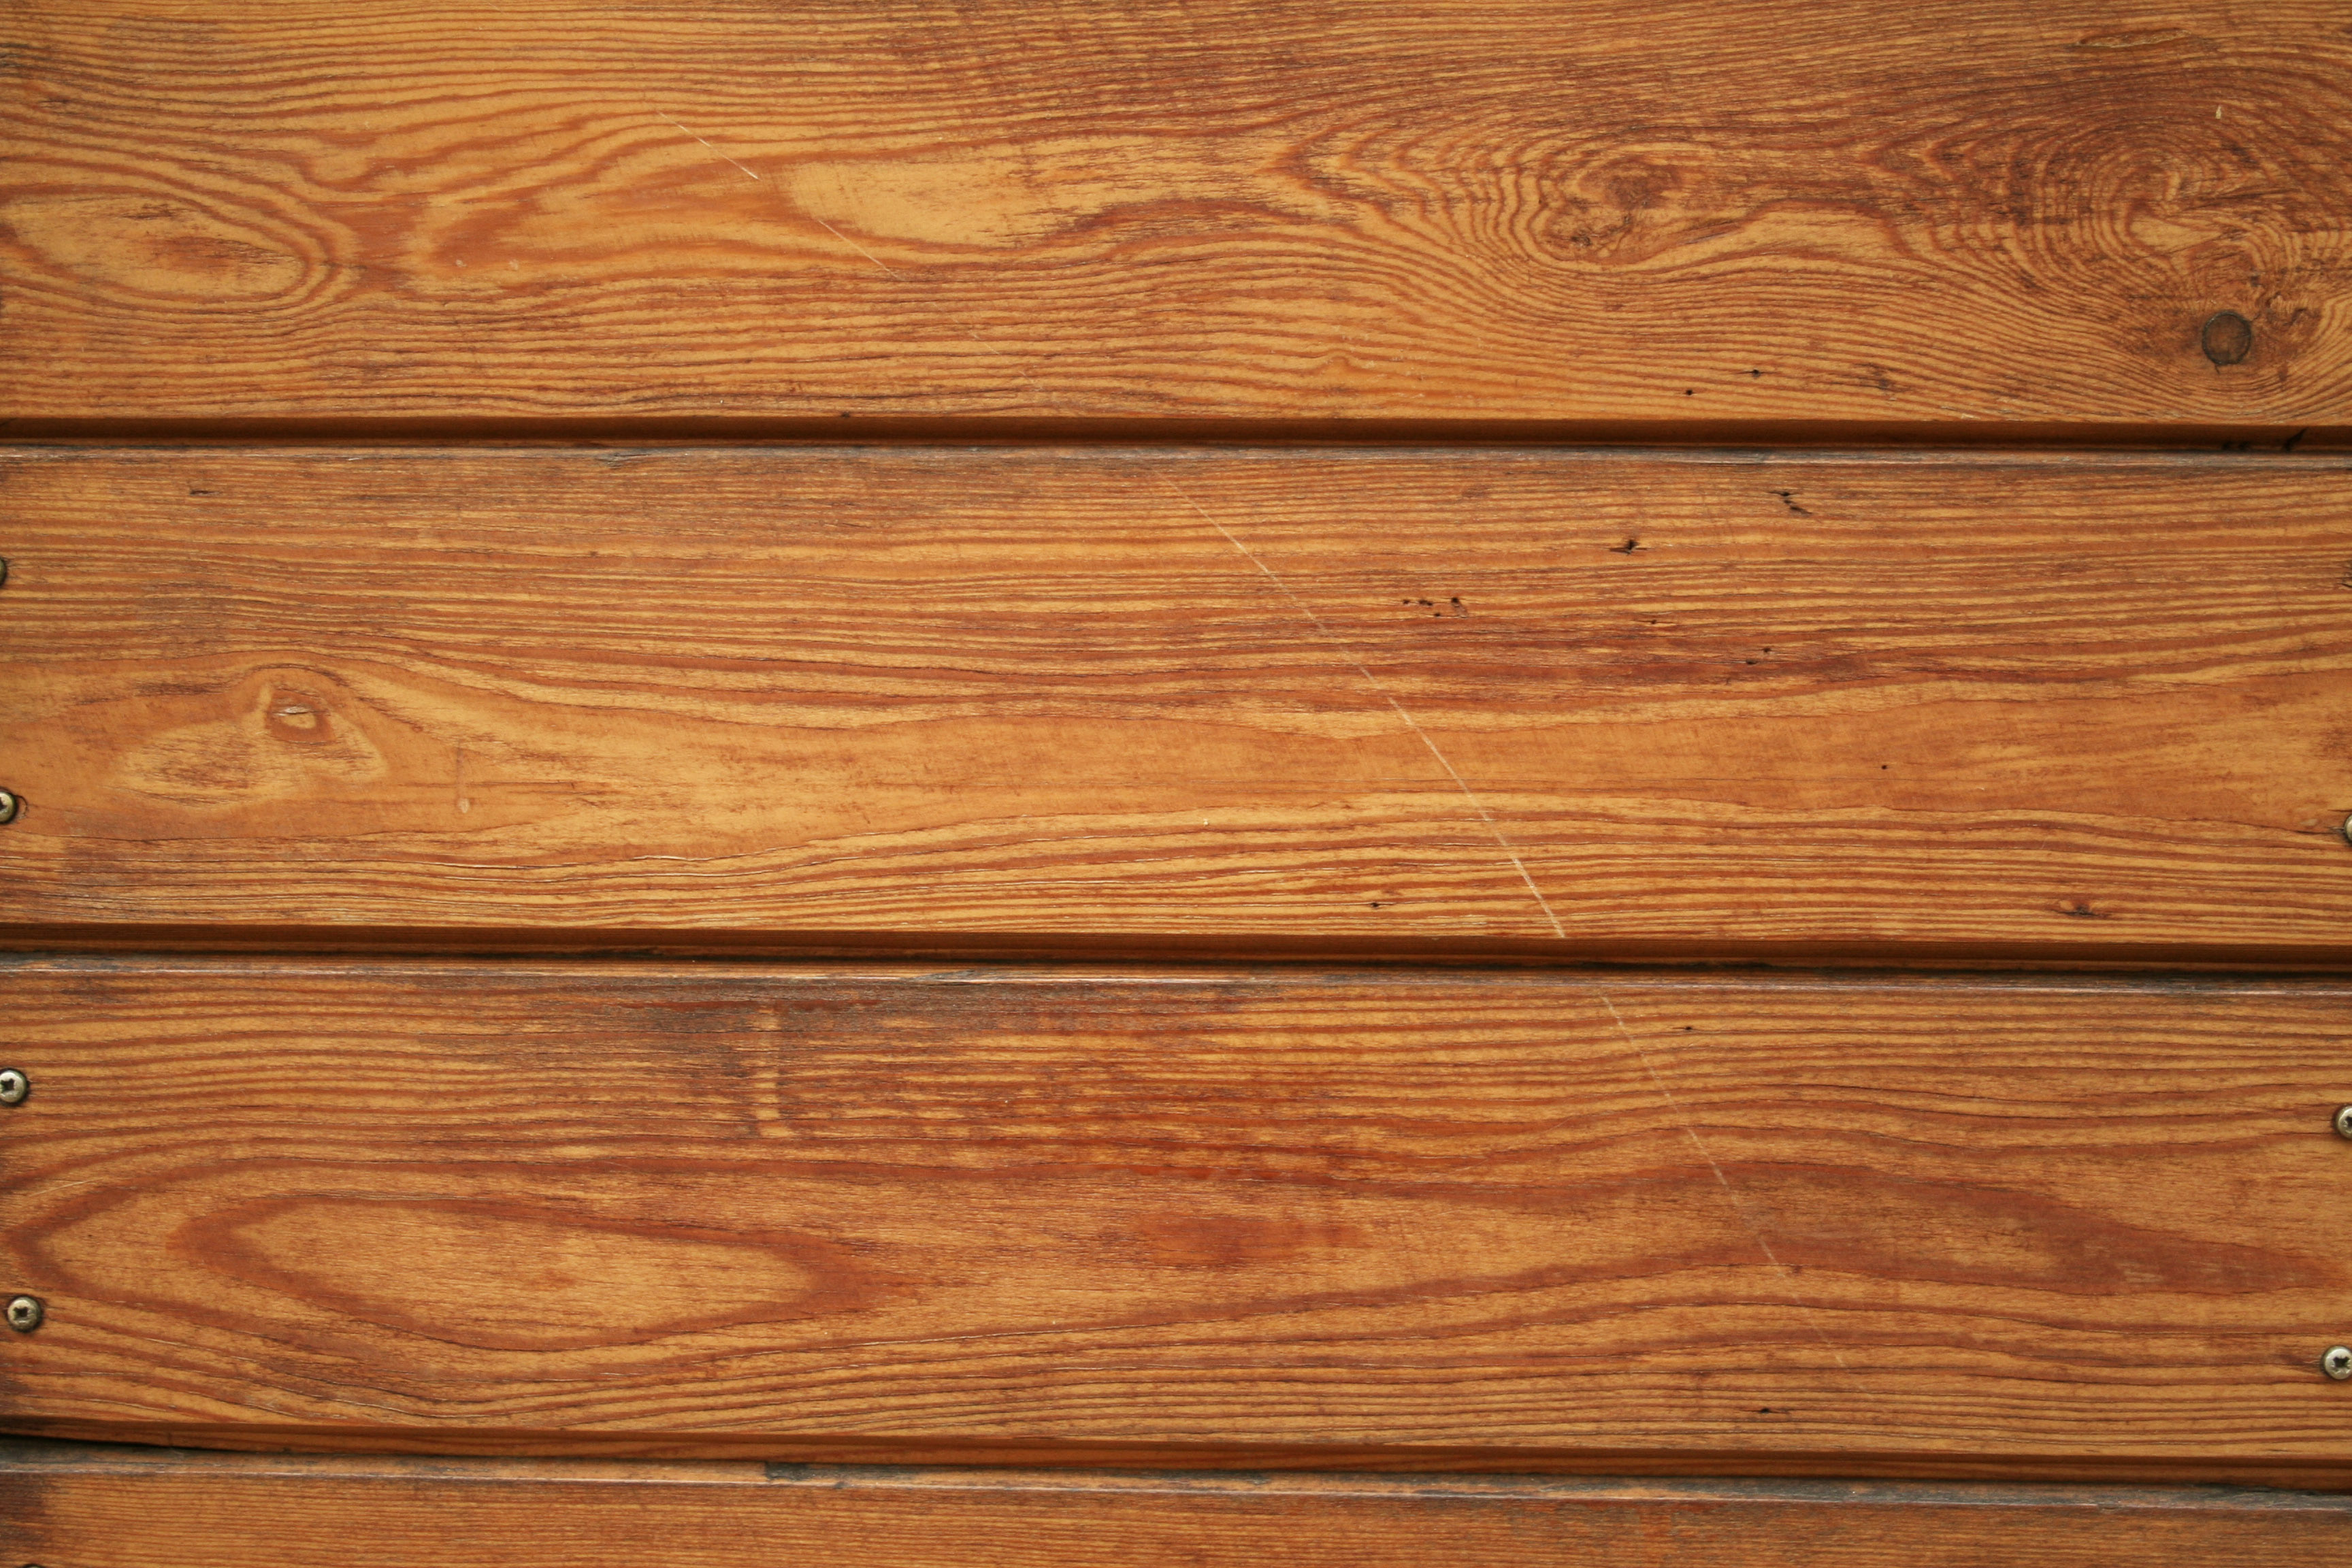 You Can Download Free This Fine Wood Planks Texture